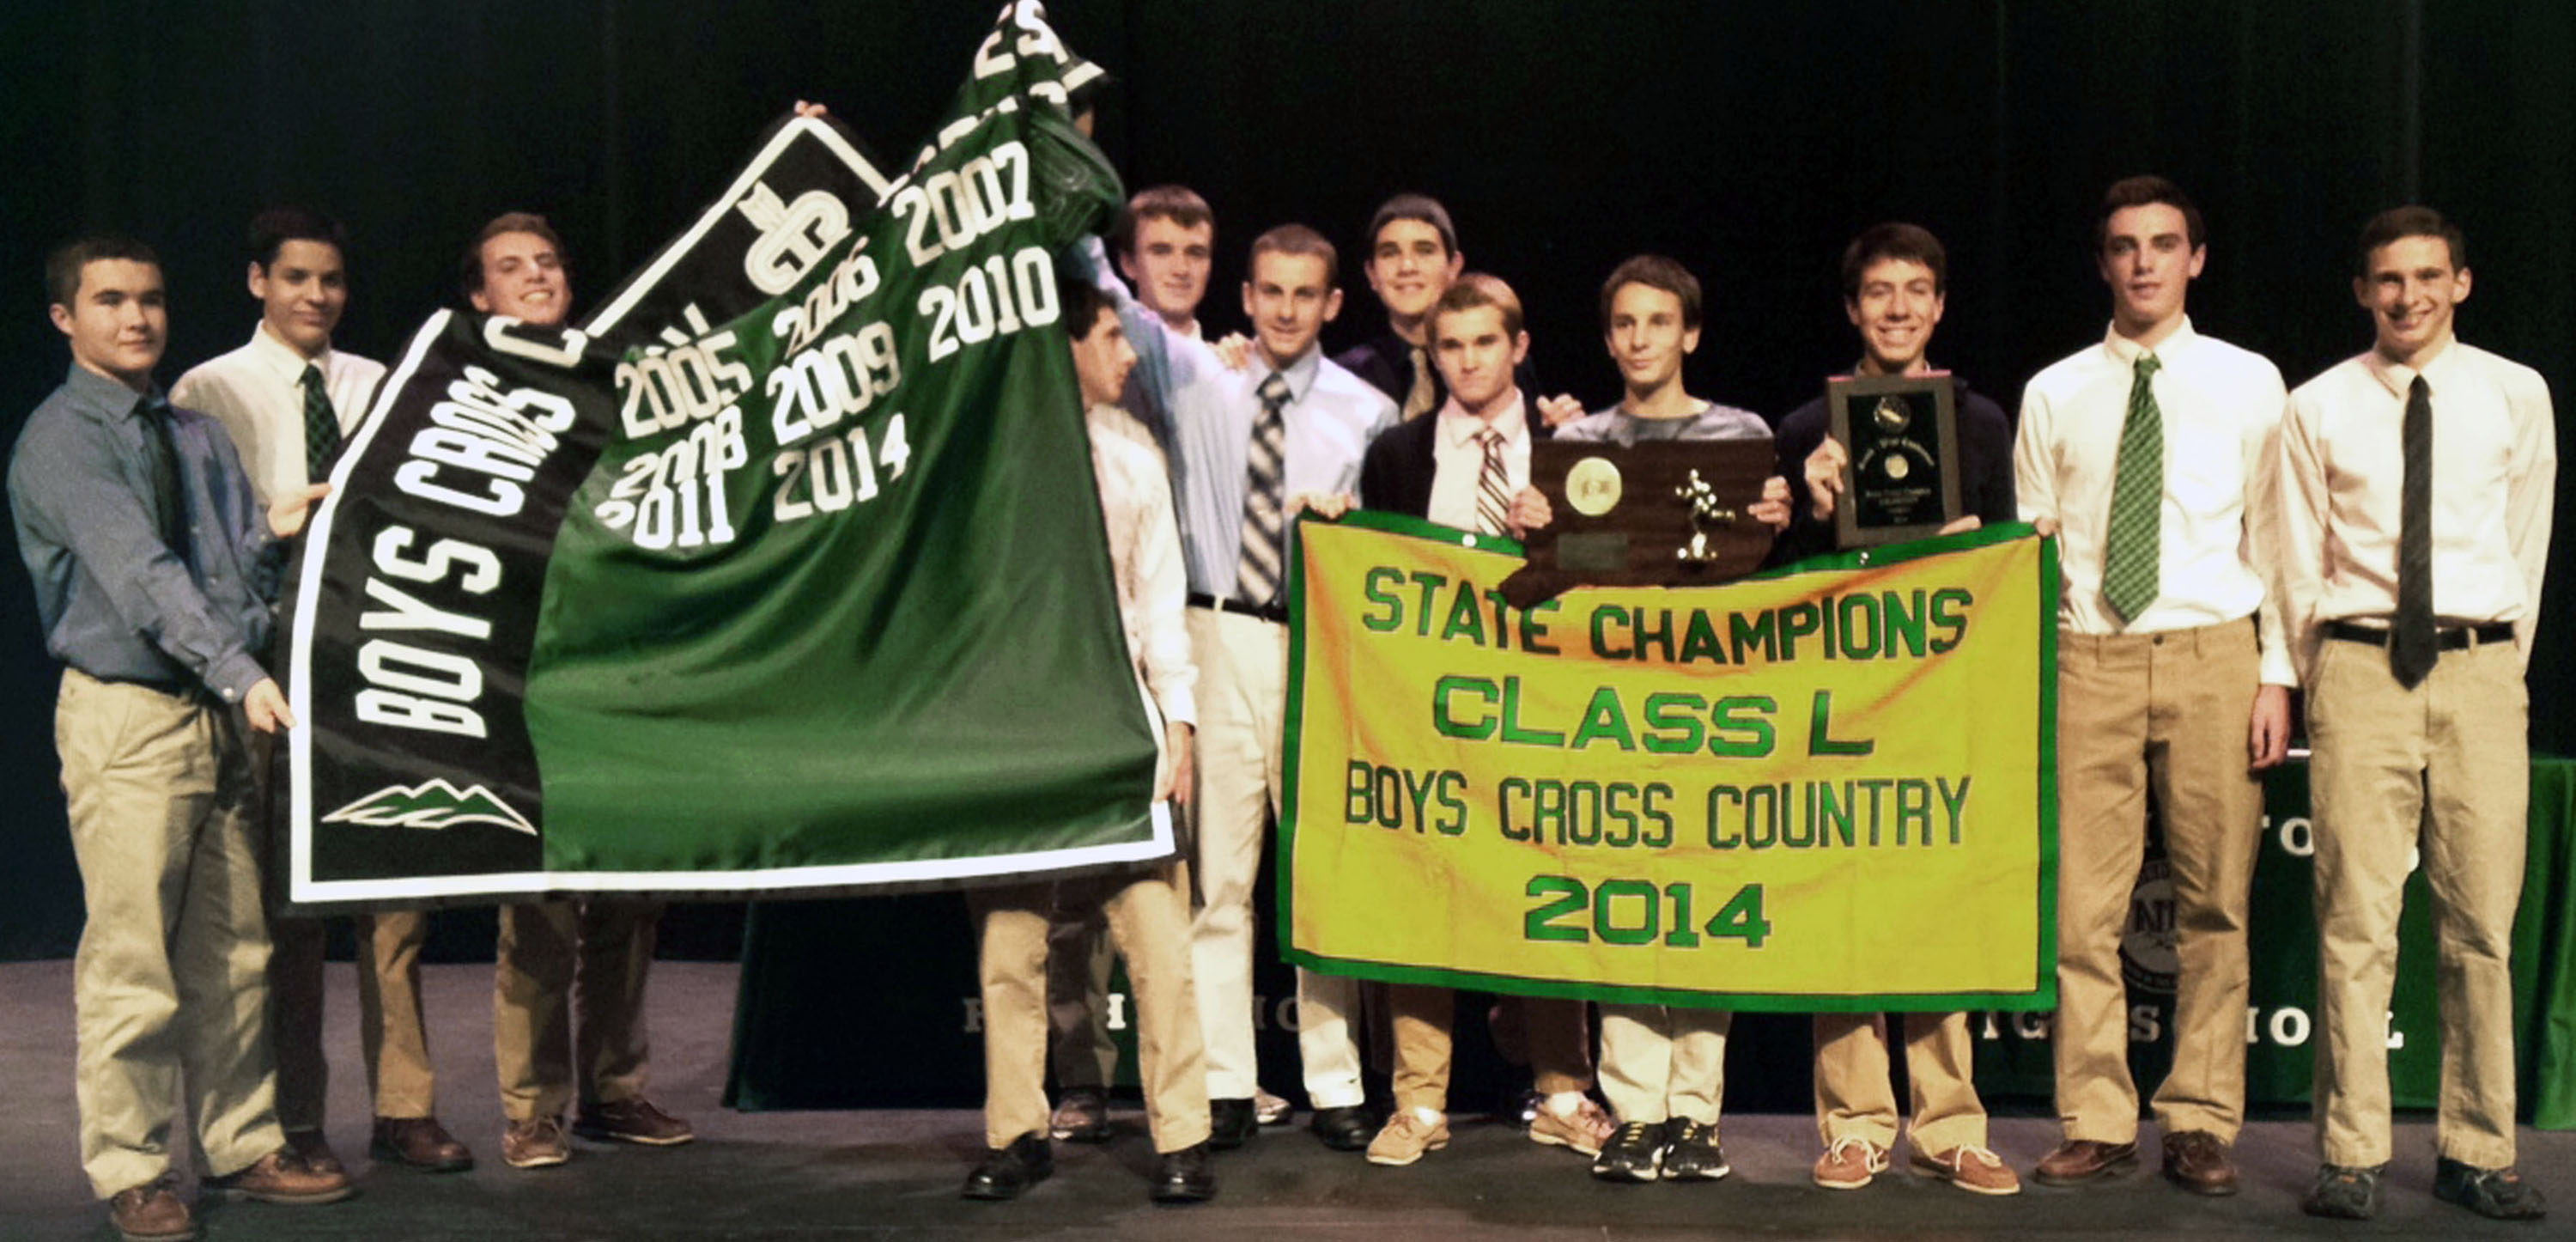 Green Wave boys' cross country 2014 state class 'L' champions 4